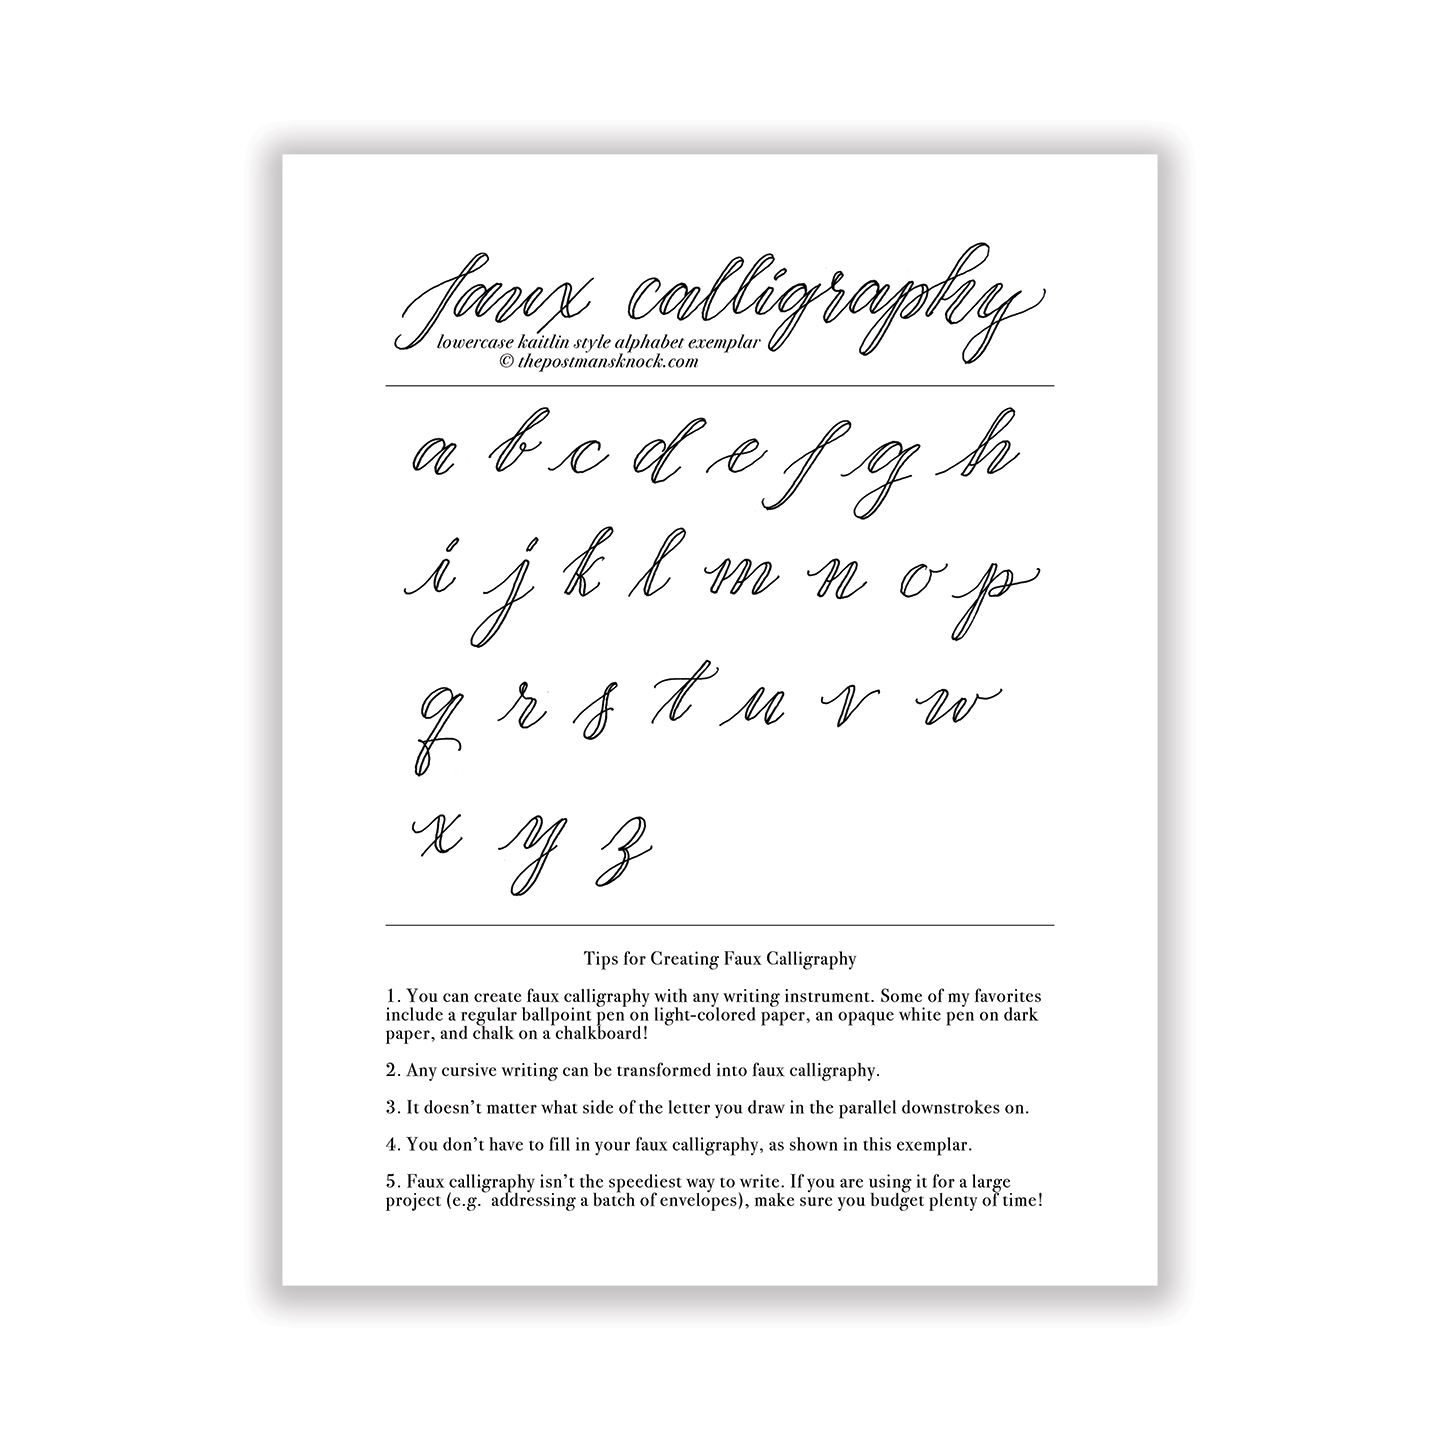 Free Basic Faux Calligraphy Exemplar Kaitlin Style